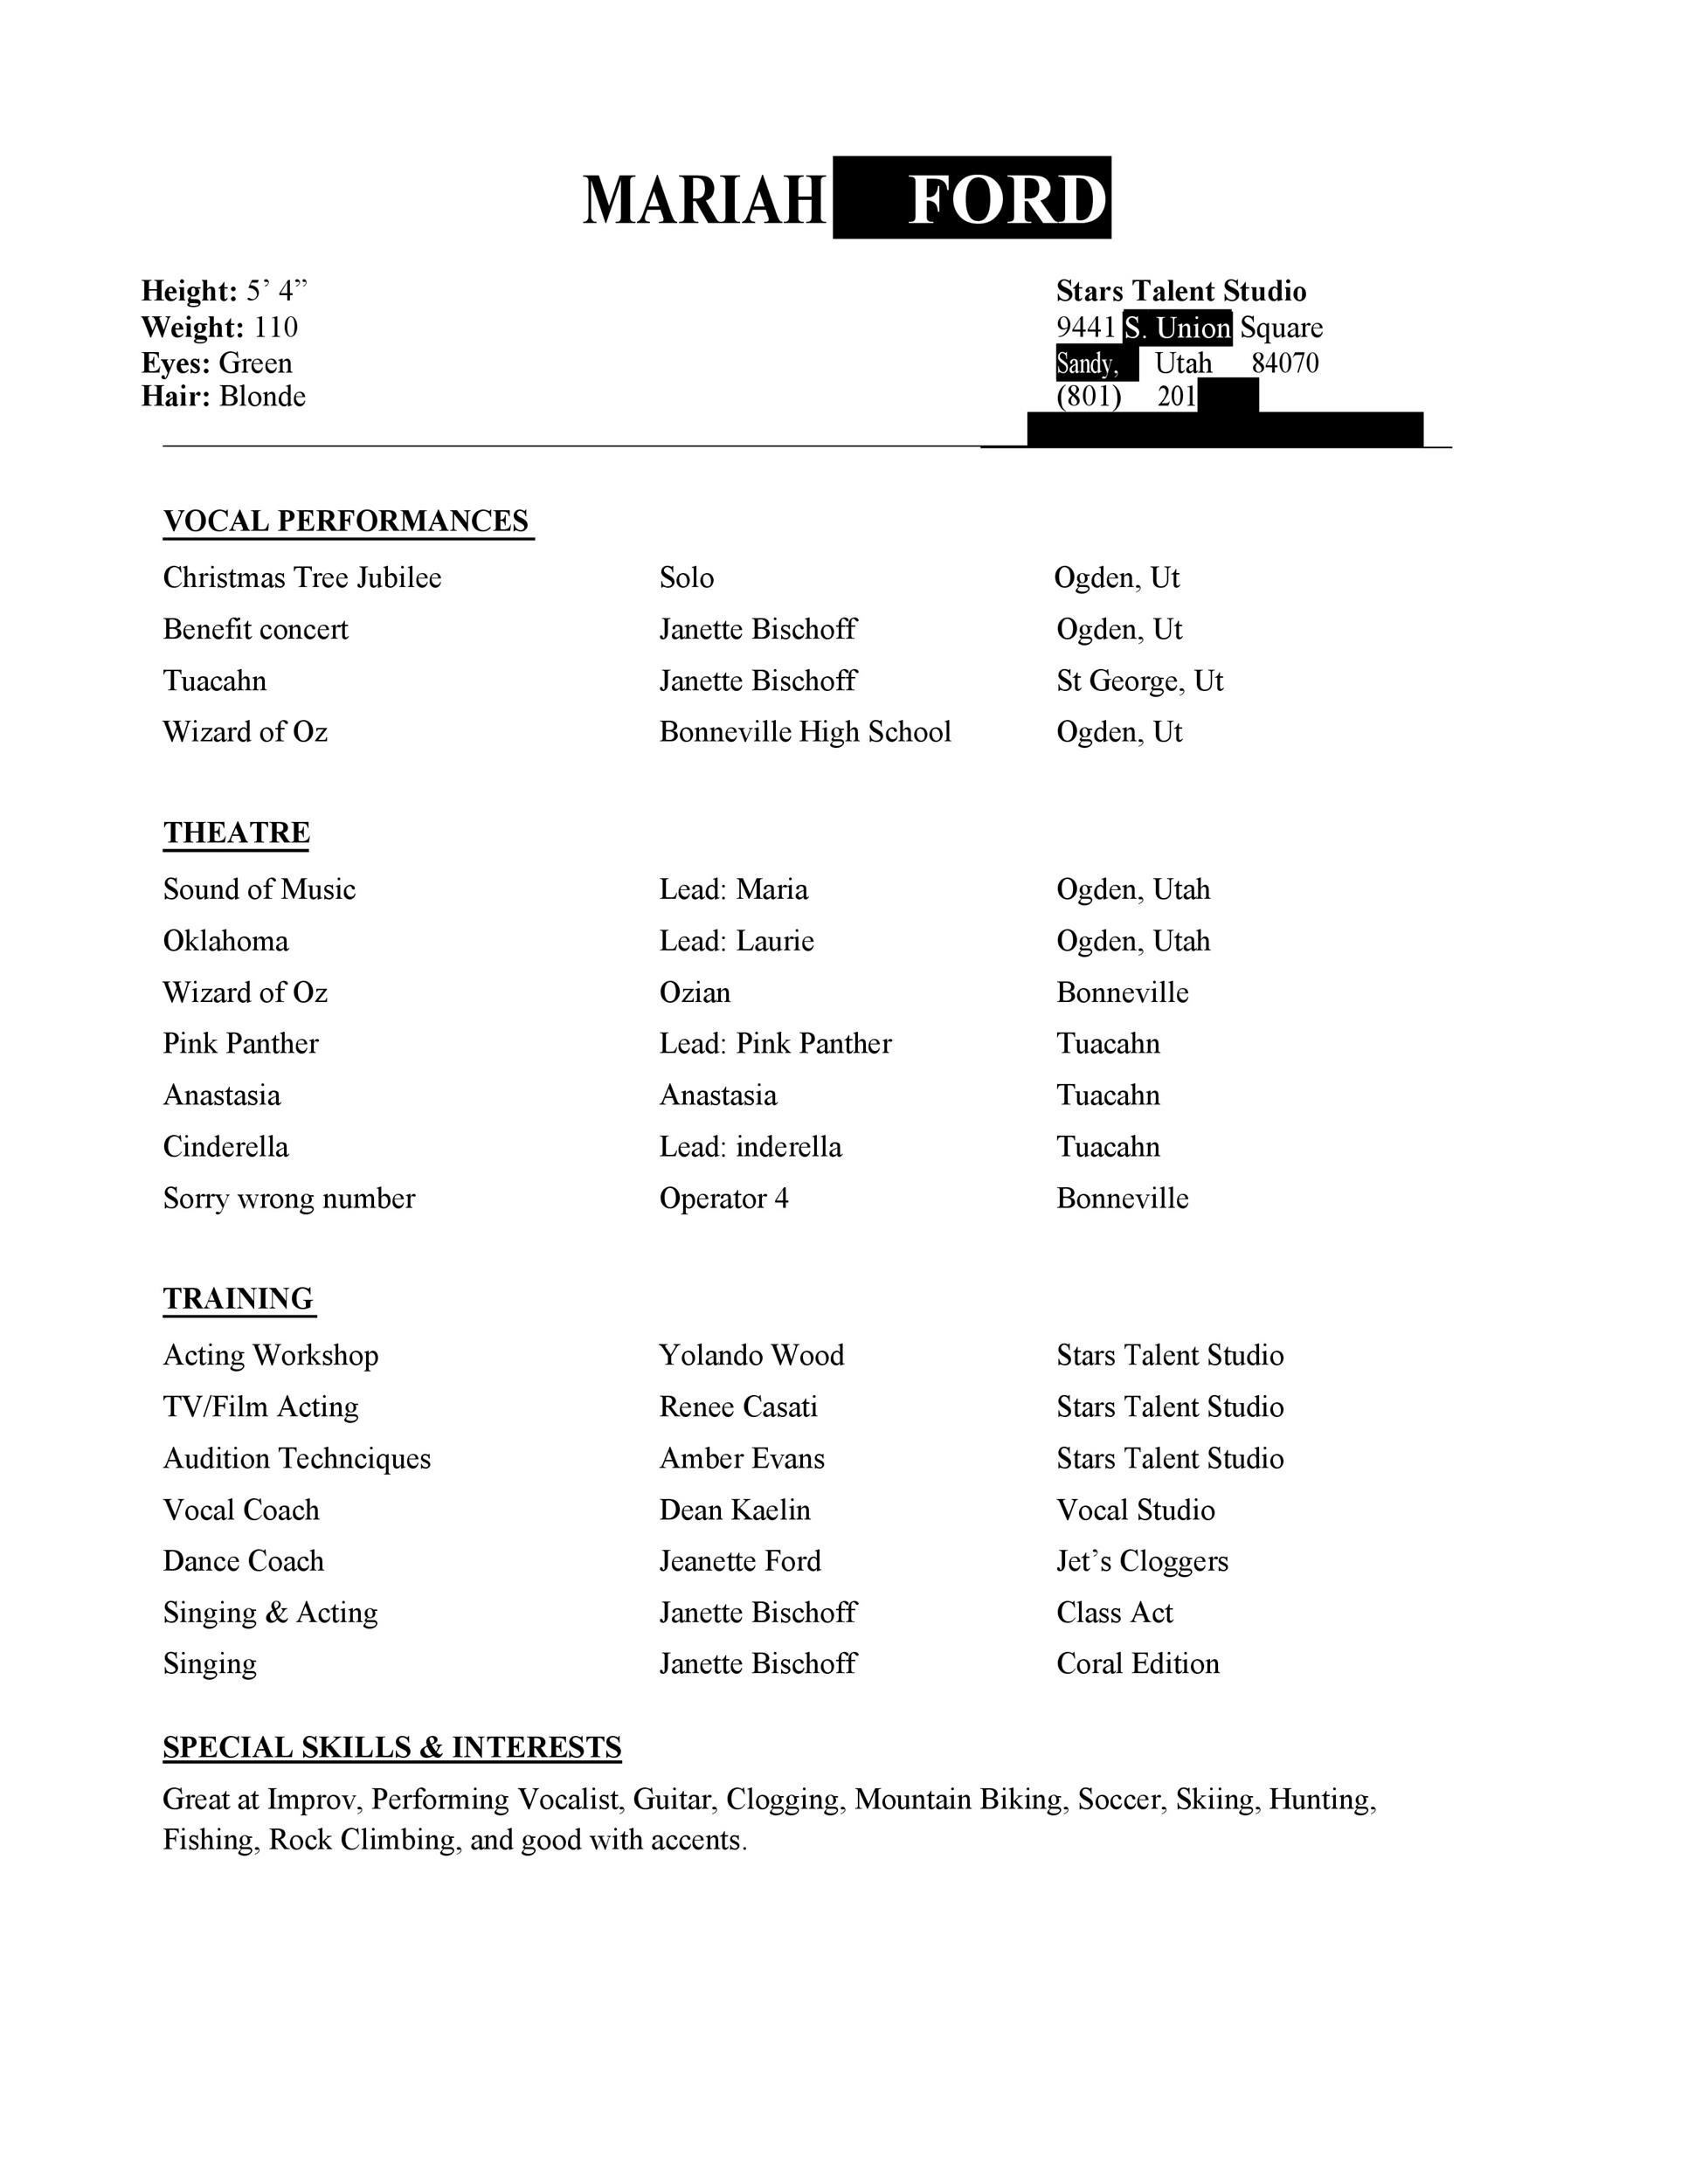 50 FREE Acting Resume Templates (Word & Google Docs) ᐅ ...